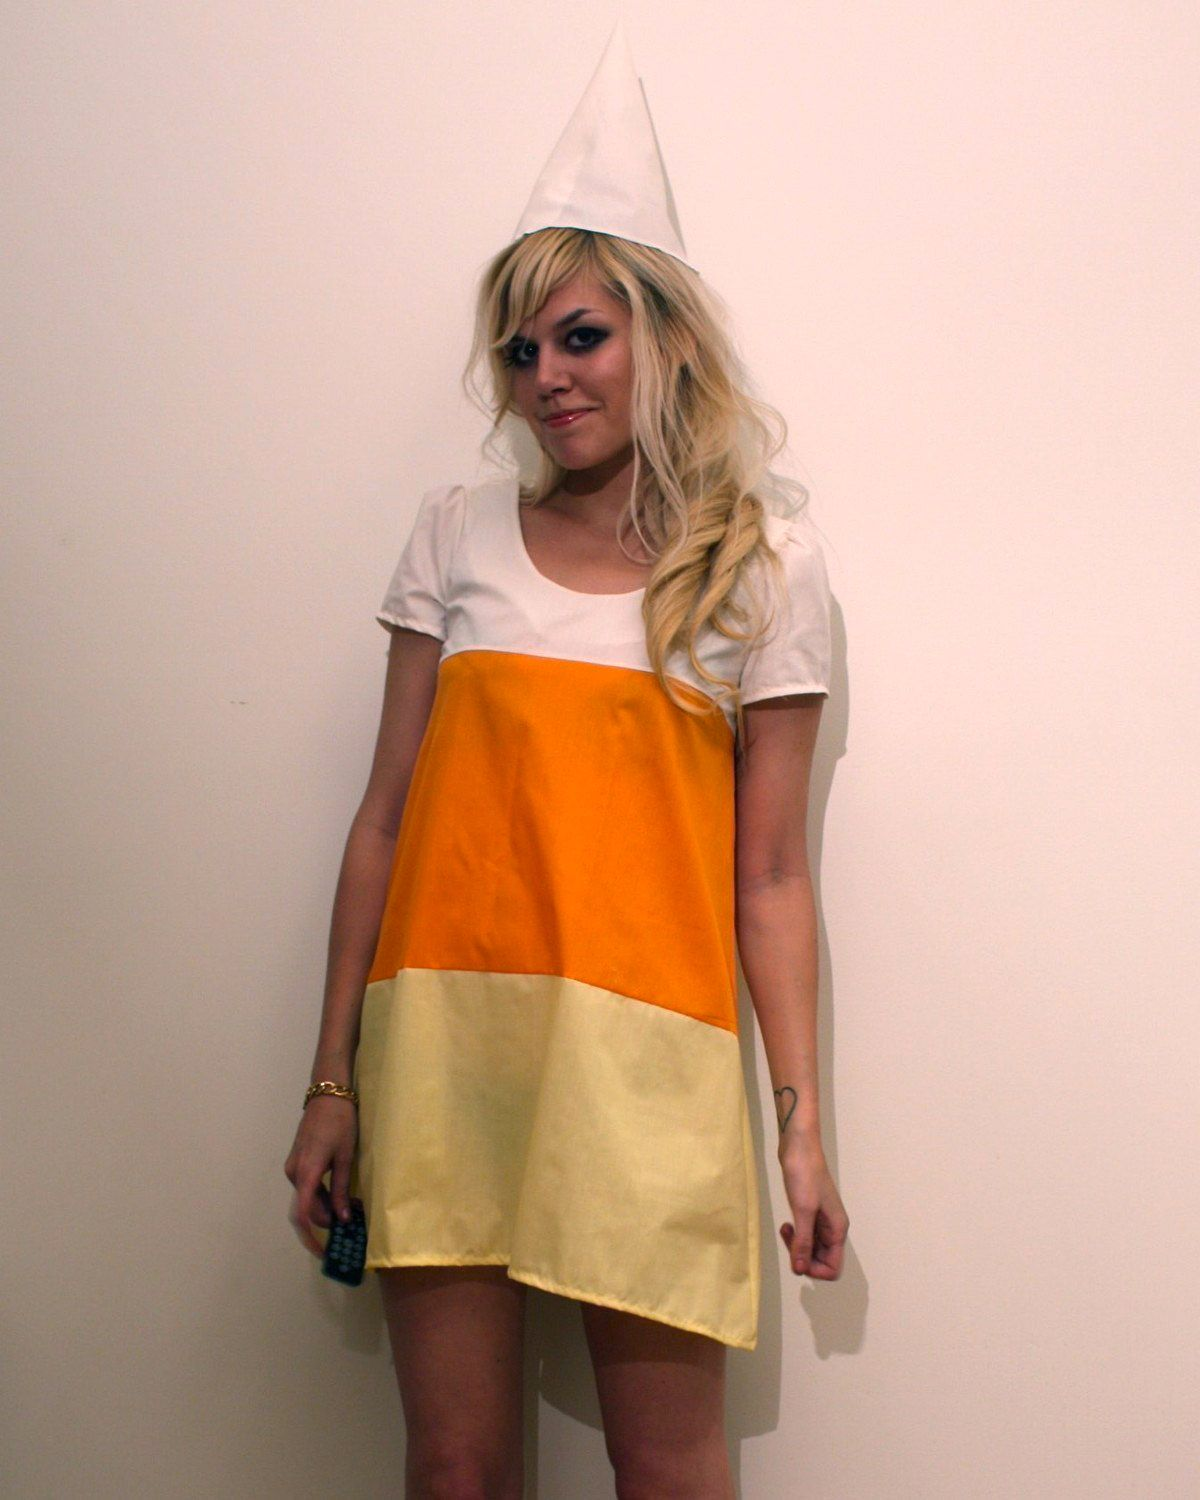 Candycorn Costume, for when you just need something simple